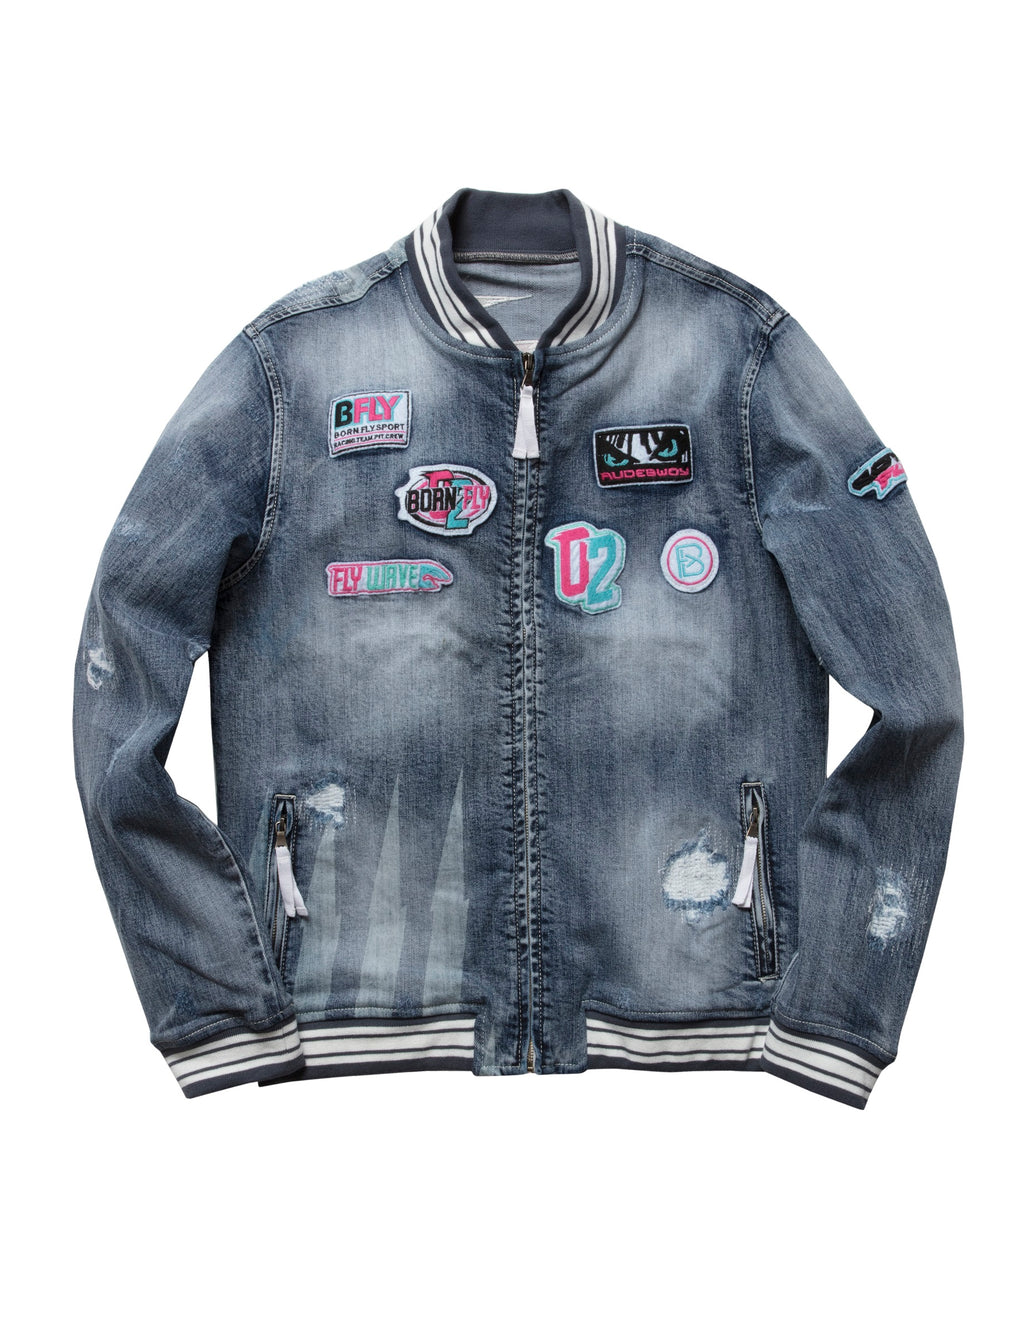 Pok Denim Jacket